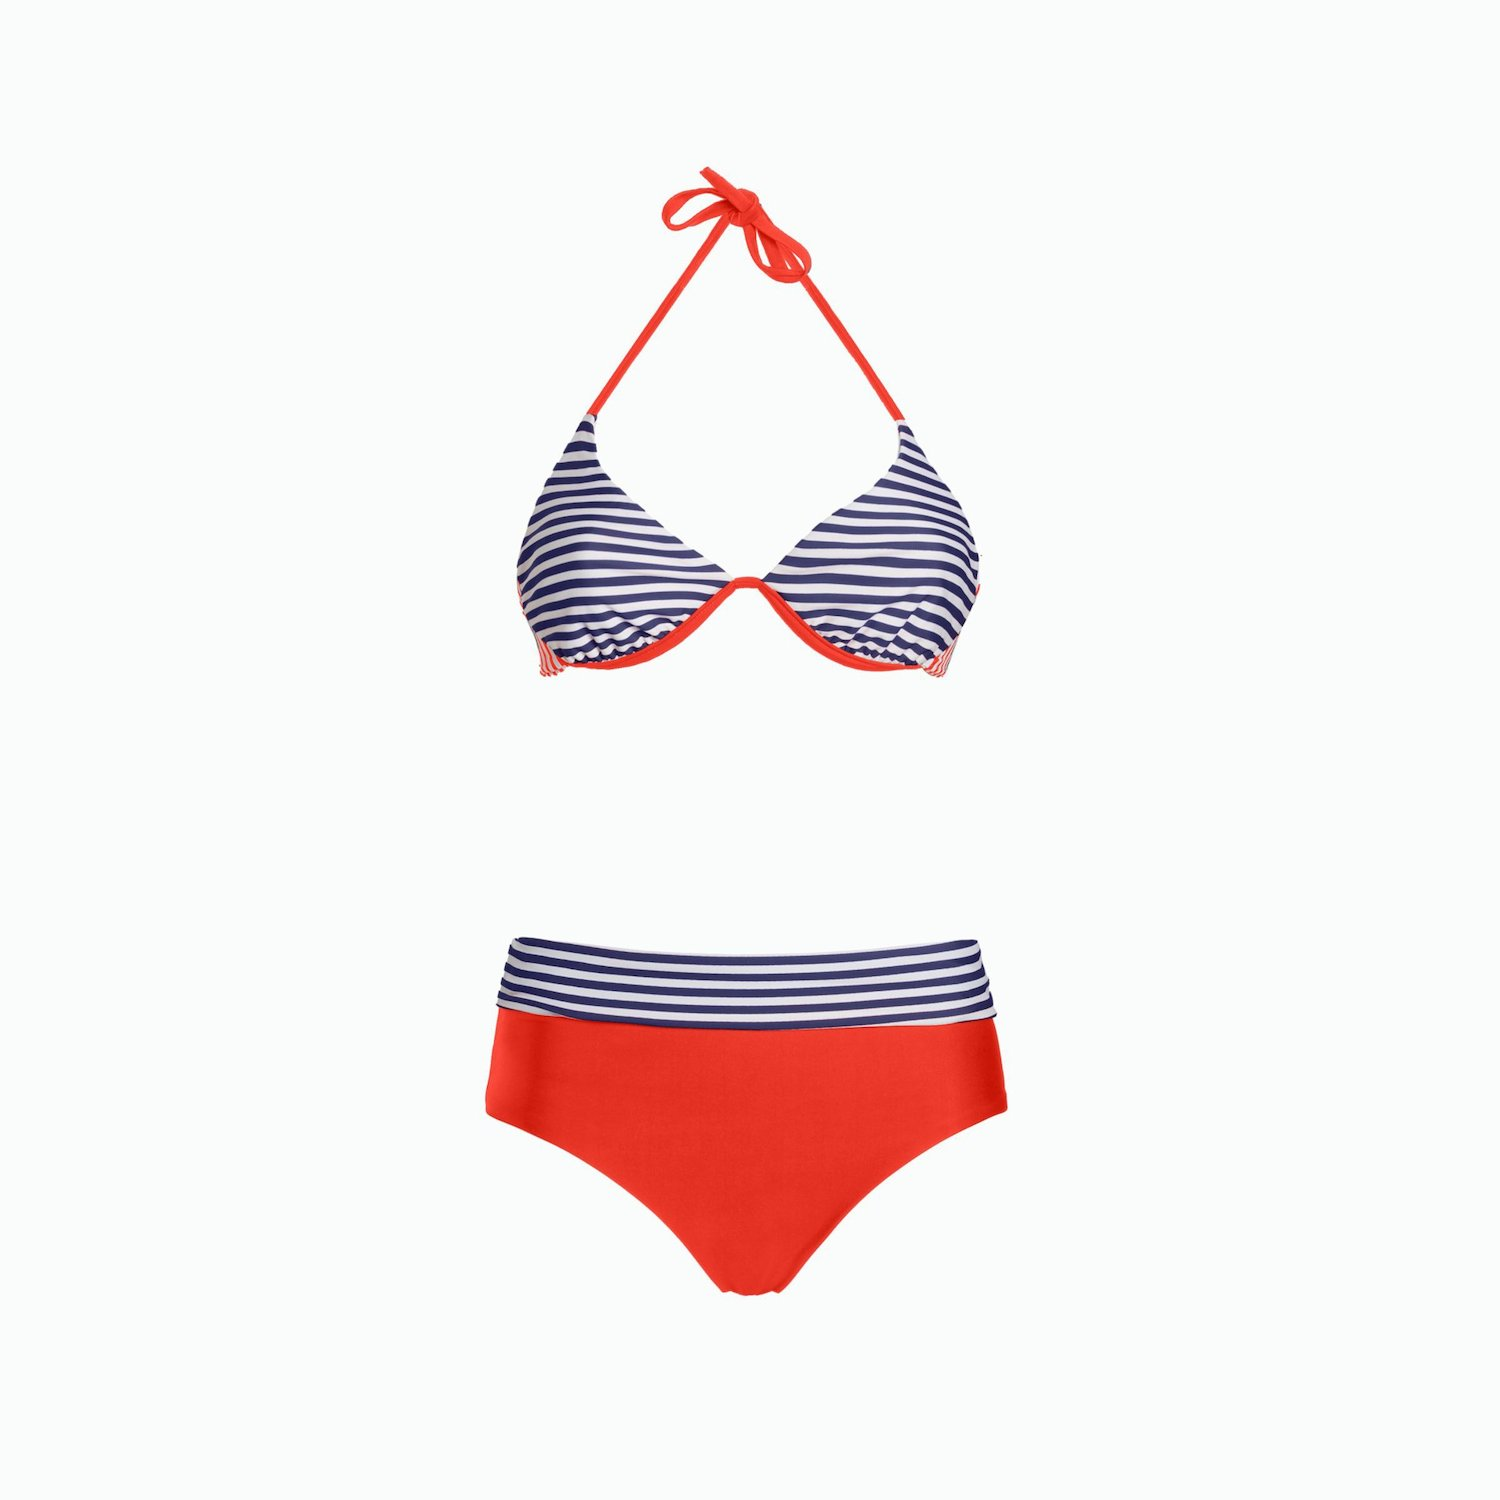 BIKINI A140 - Slam Red / White